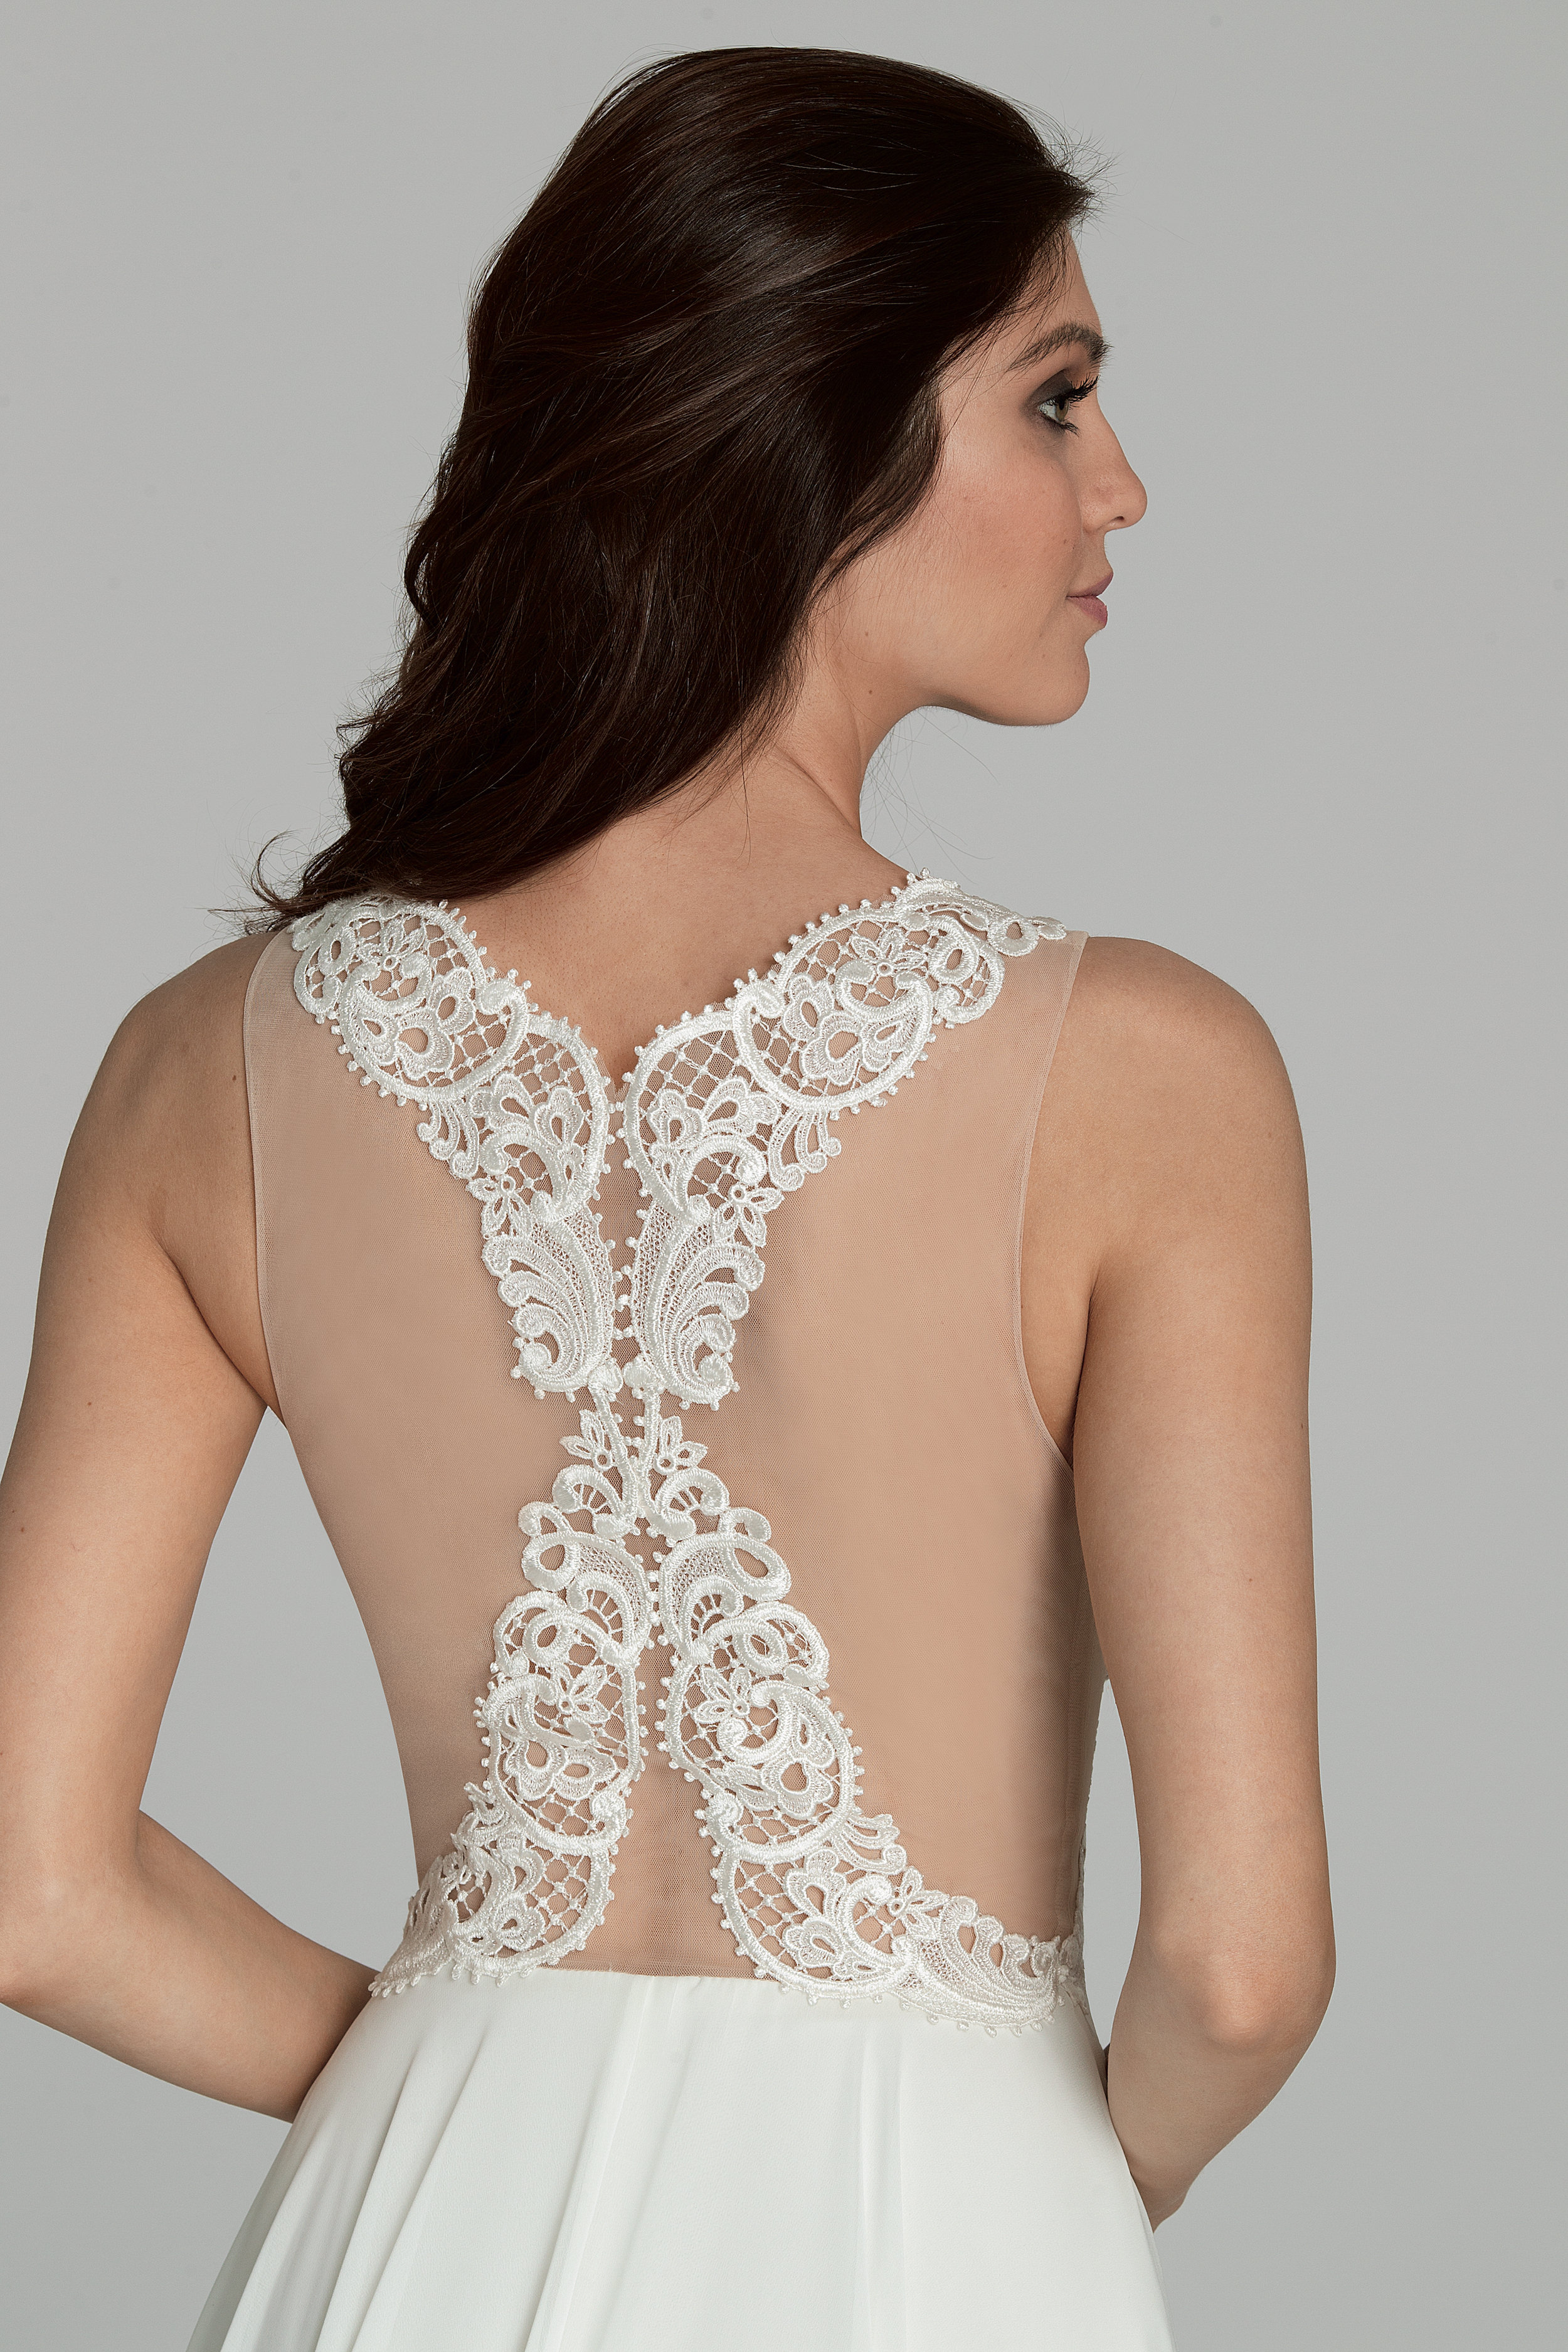 Bridal Gowns And Wedding Dresses By Jlm Couture Style 2557